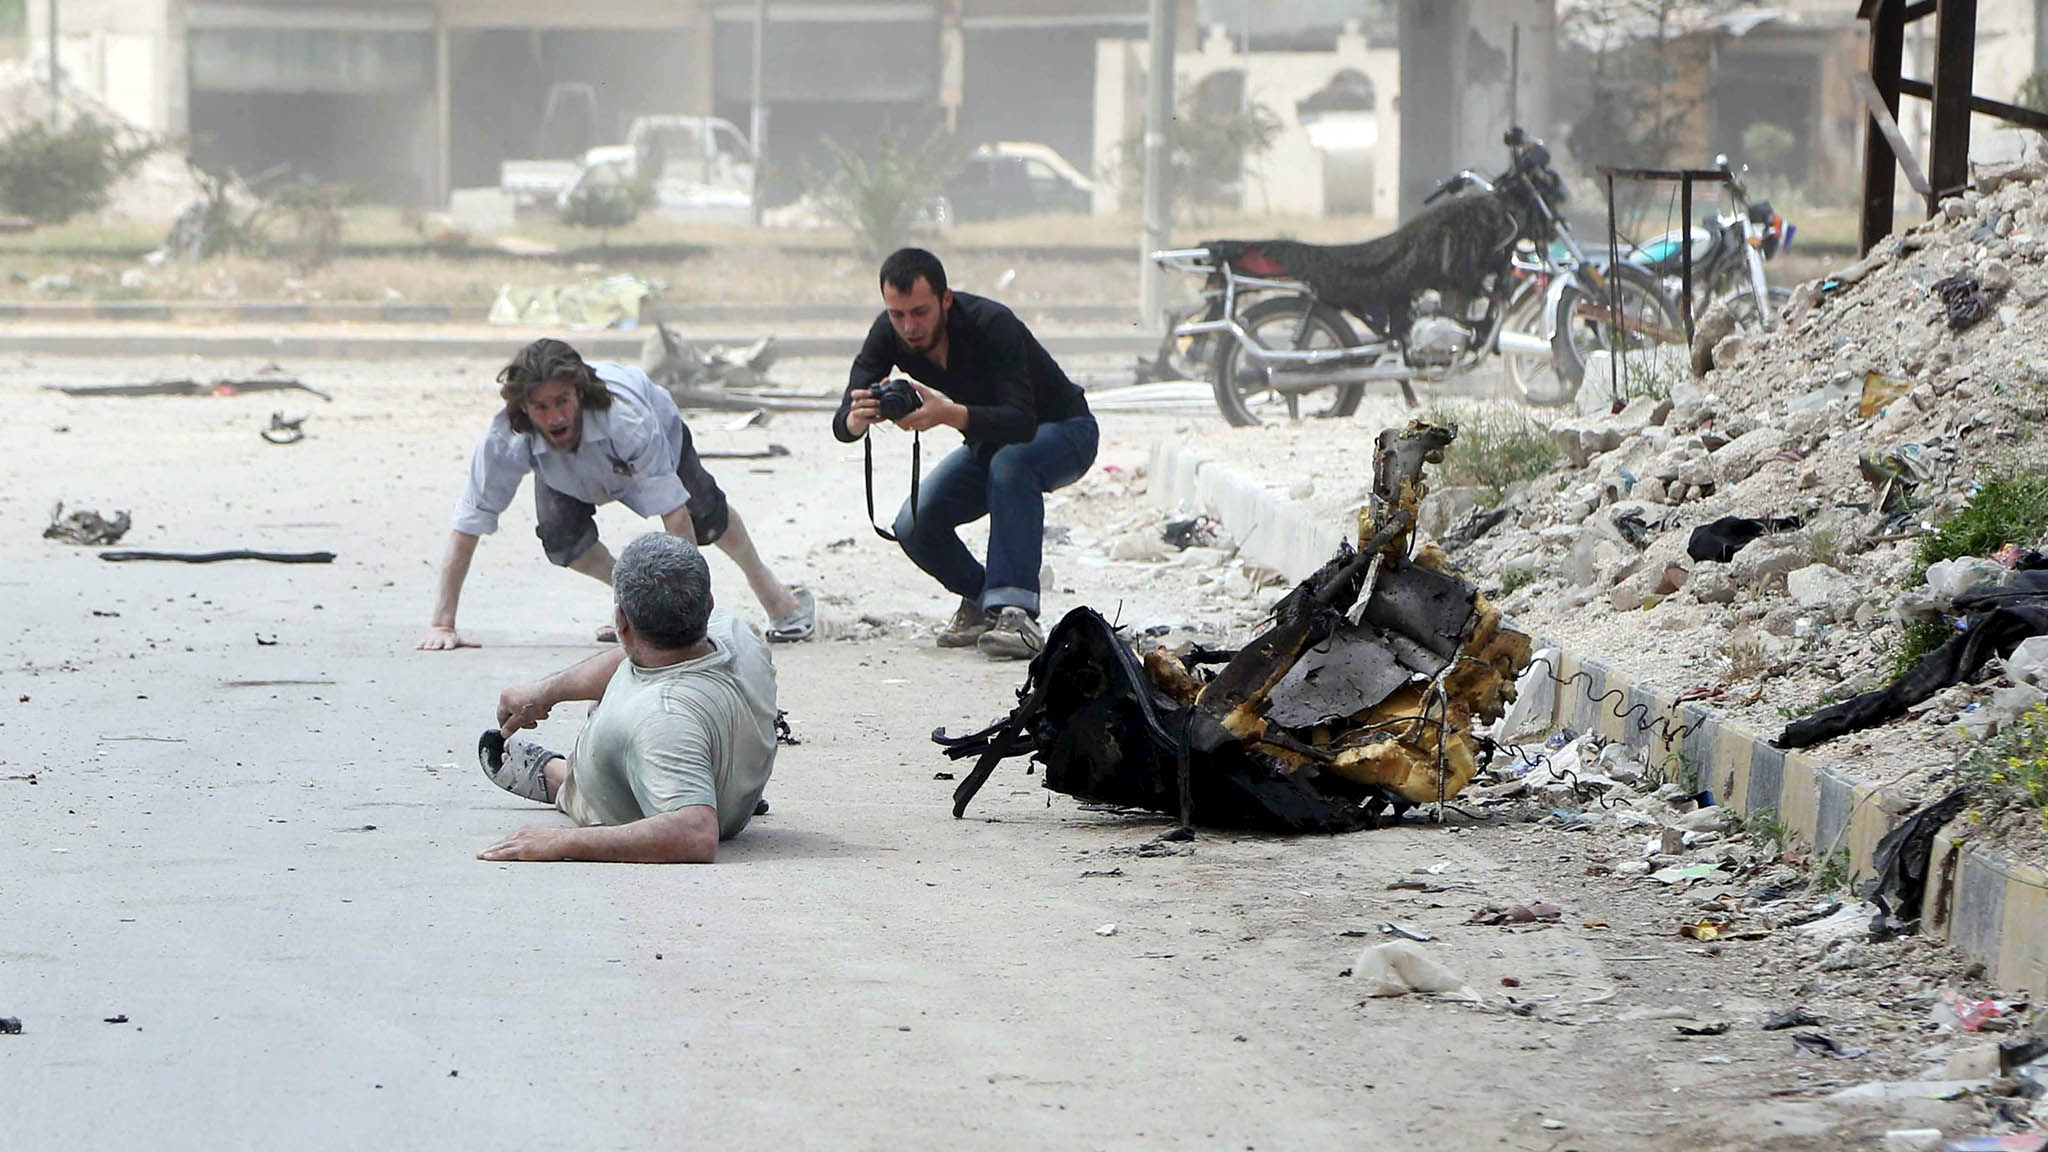 A man takes pictures of civilians lying down to take cover after hearing what activists said was shelling by forces loyal to Syria's President Bashar al-Assad in Jisr al-Hajj roundabout in Aleppo